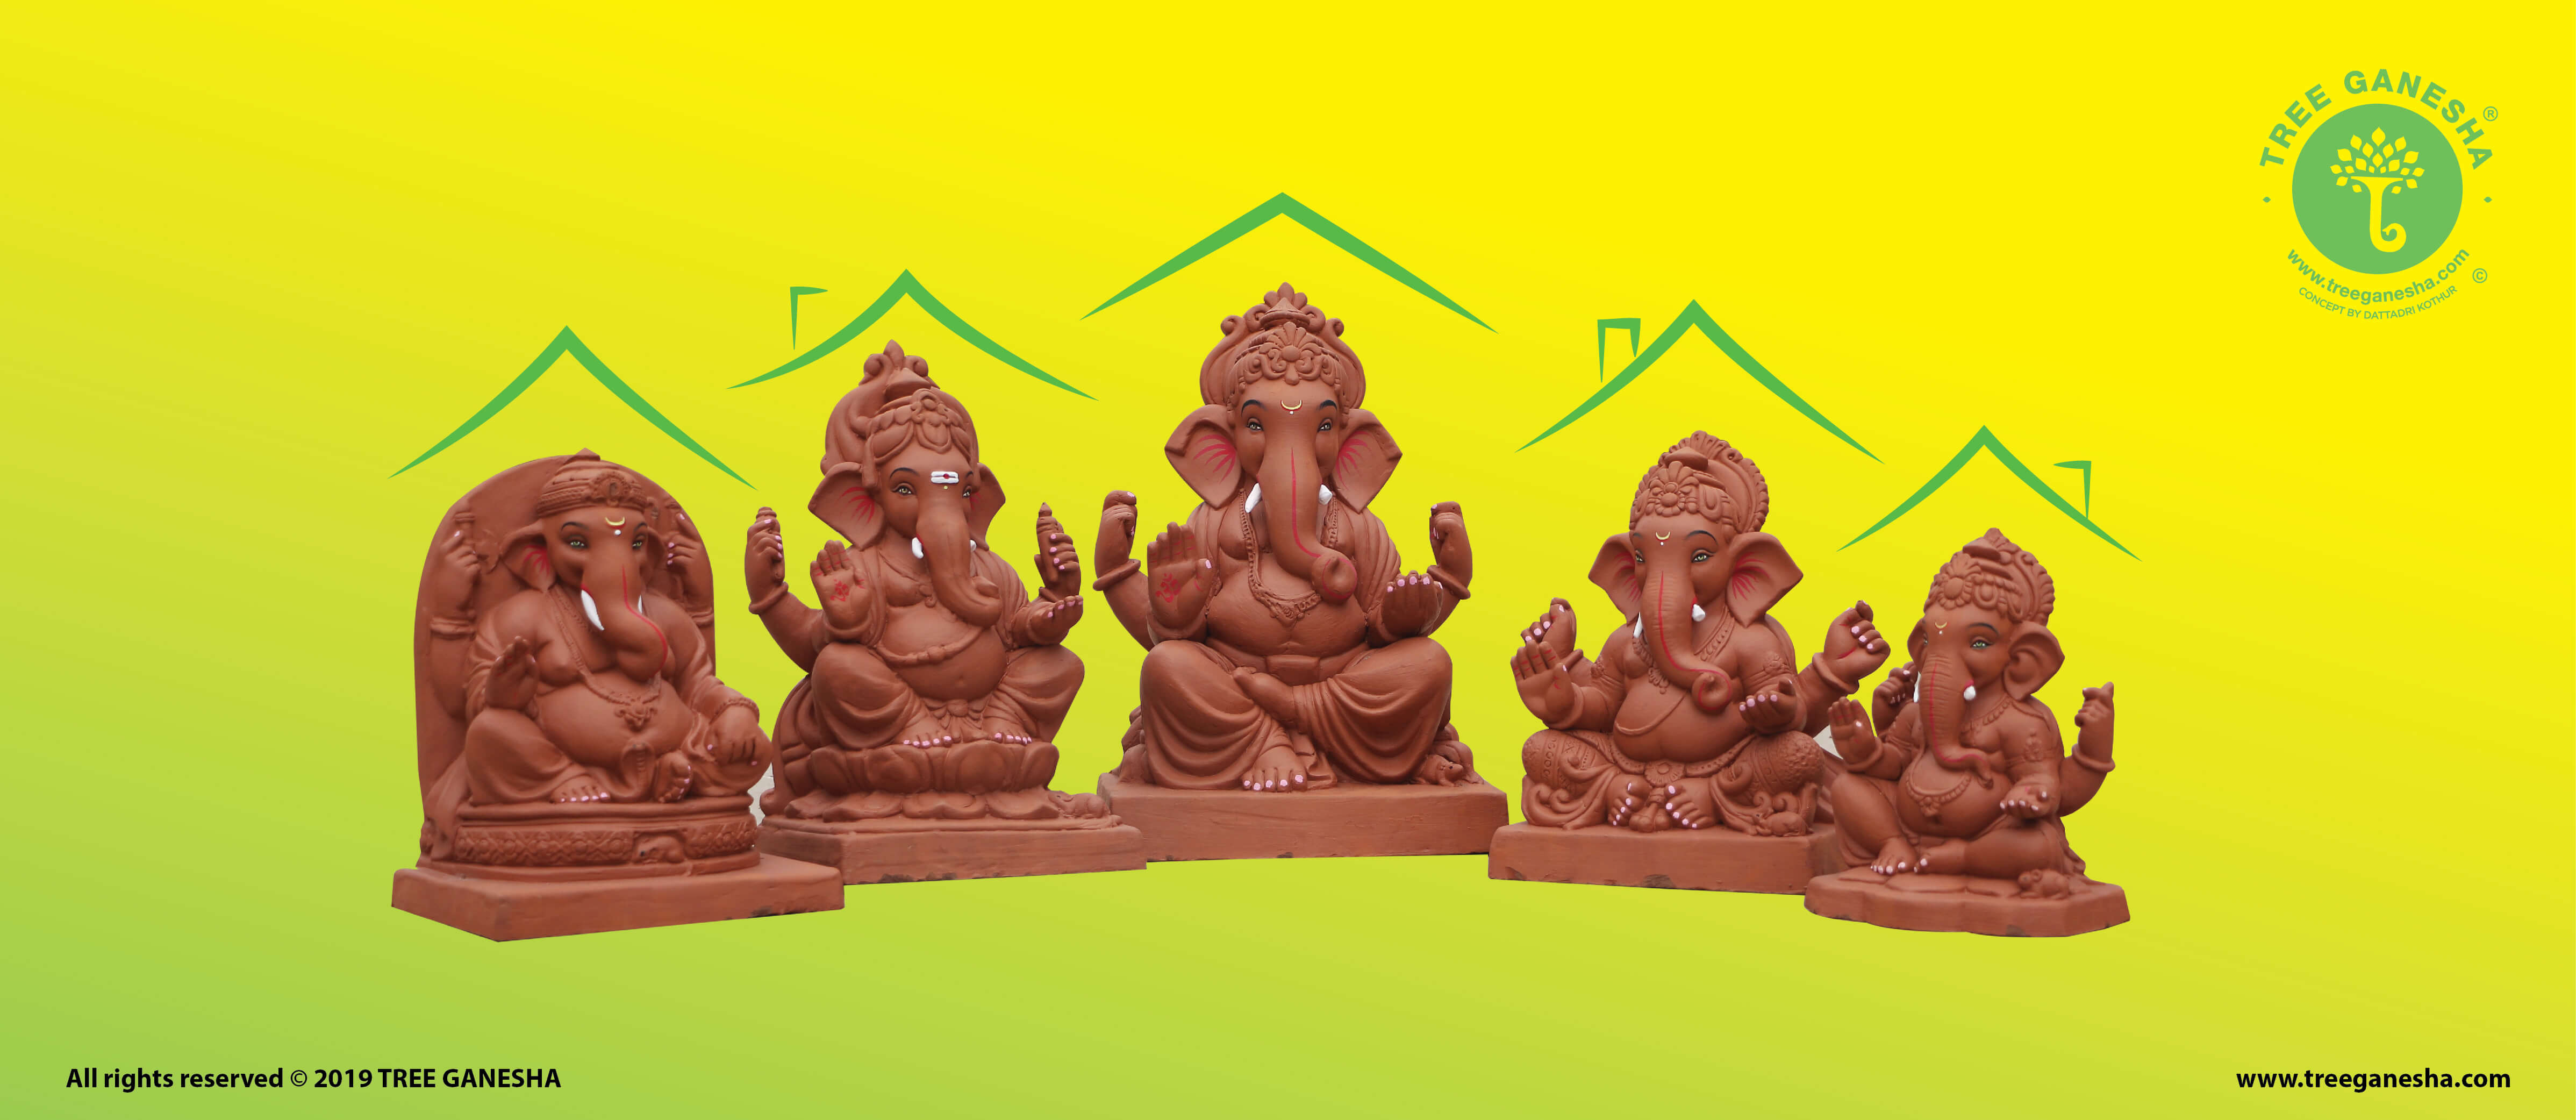 The vision of Tree Ganesha is to conserve the environment and celebrate ganesh festival eco-friendly by adopting Tree Ganesha in everyone's home